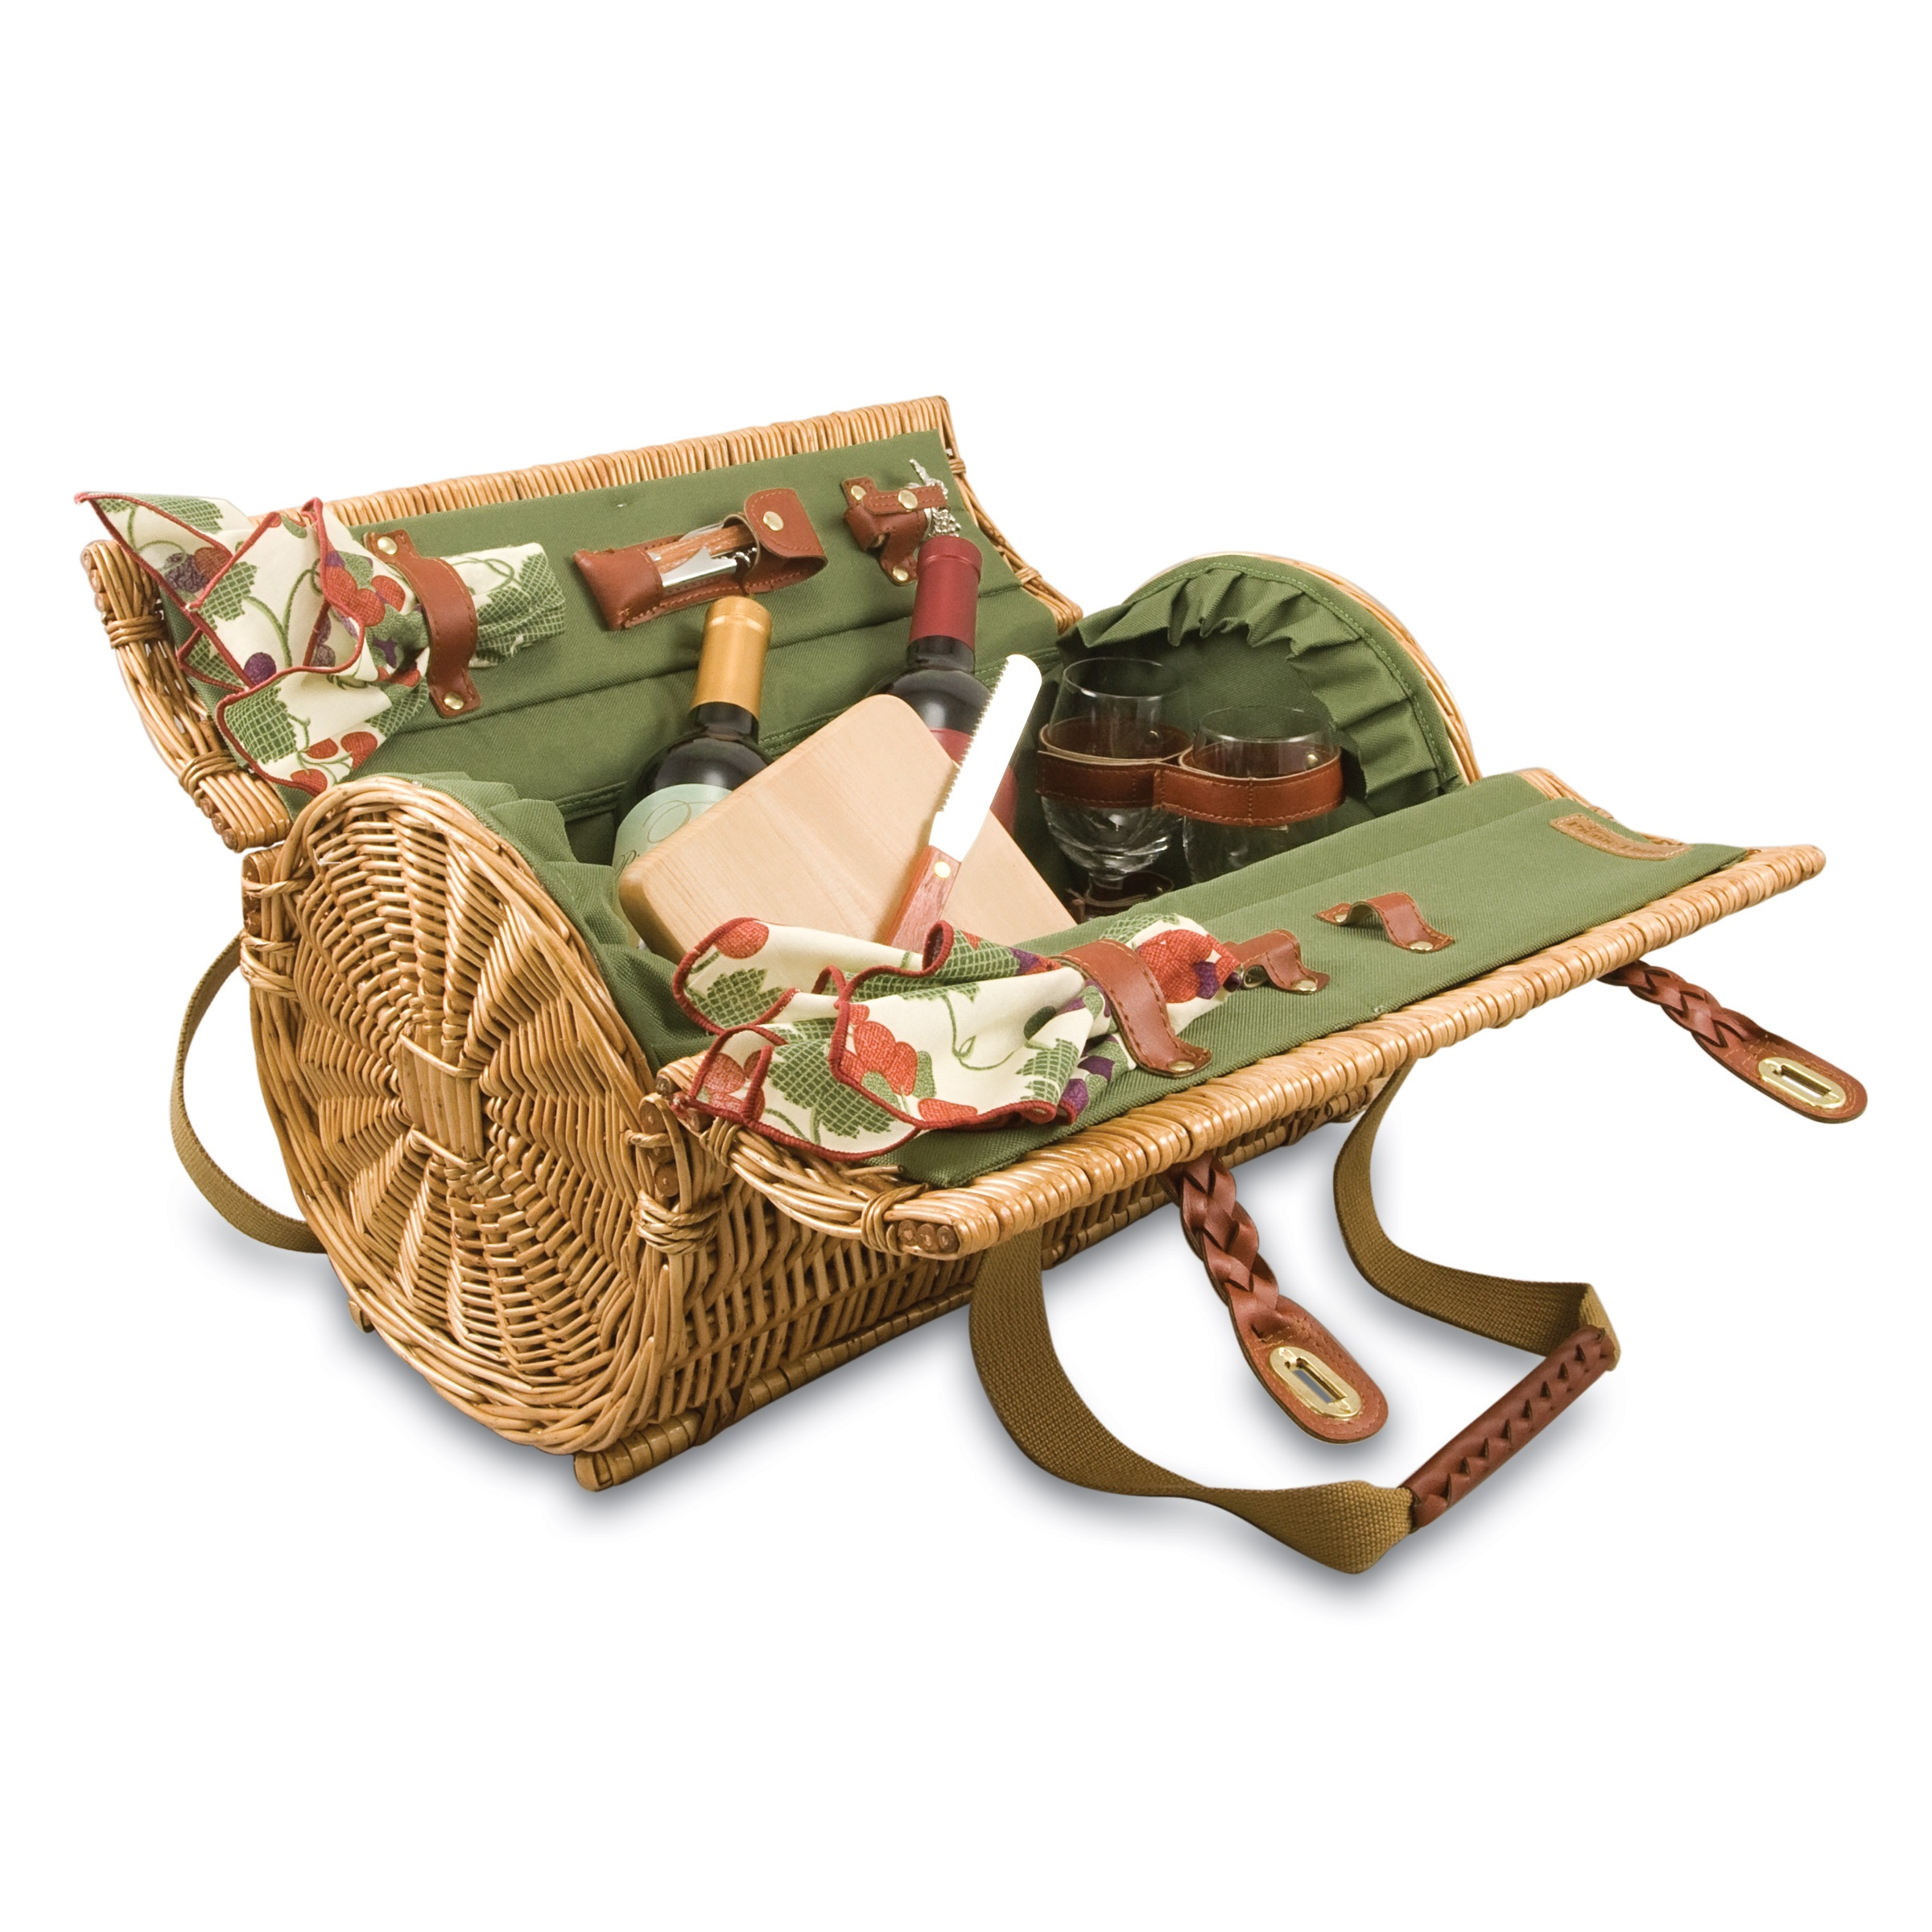 Wicker basket backpack : Picnic time verona willow wicker shoulder bag